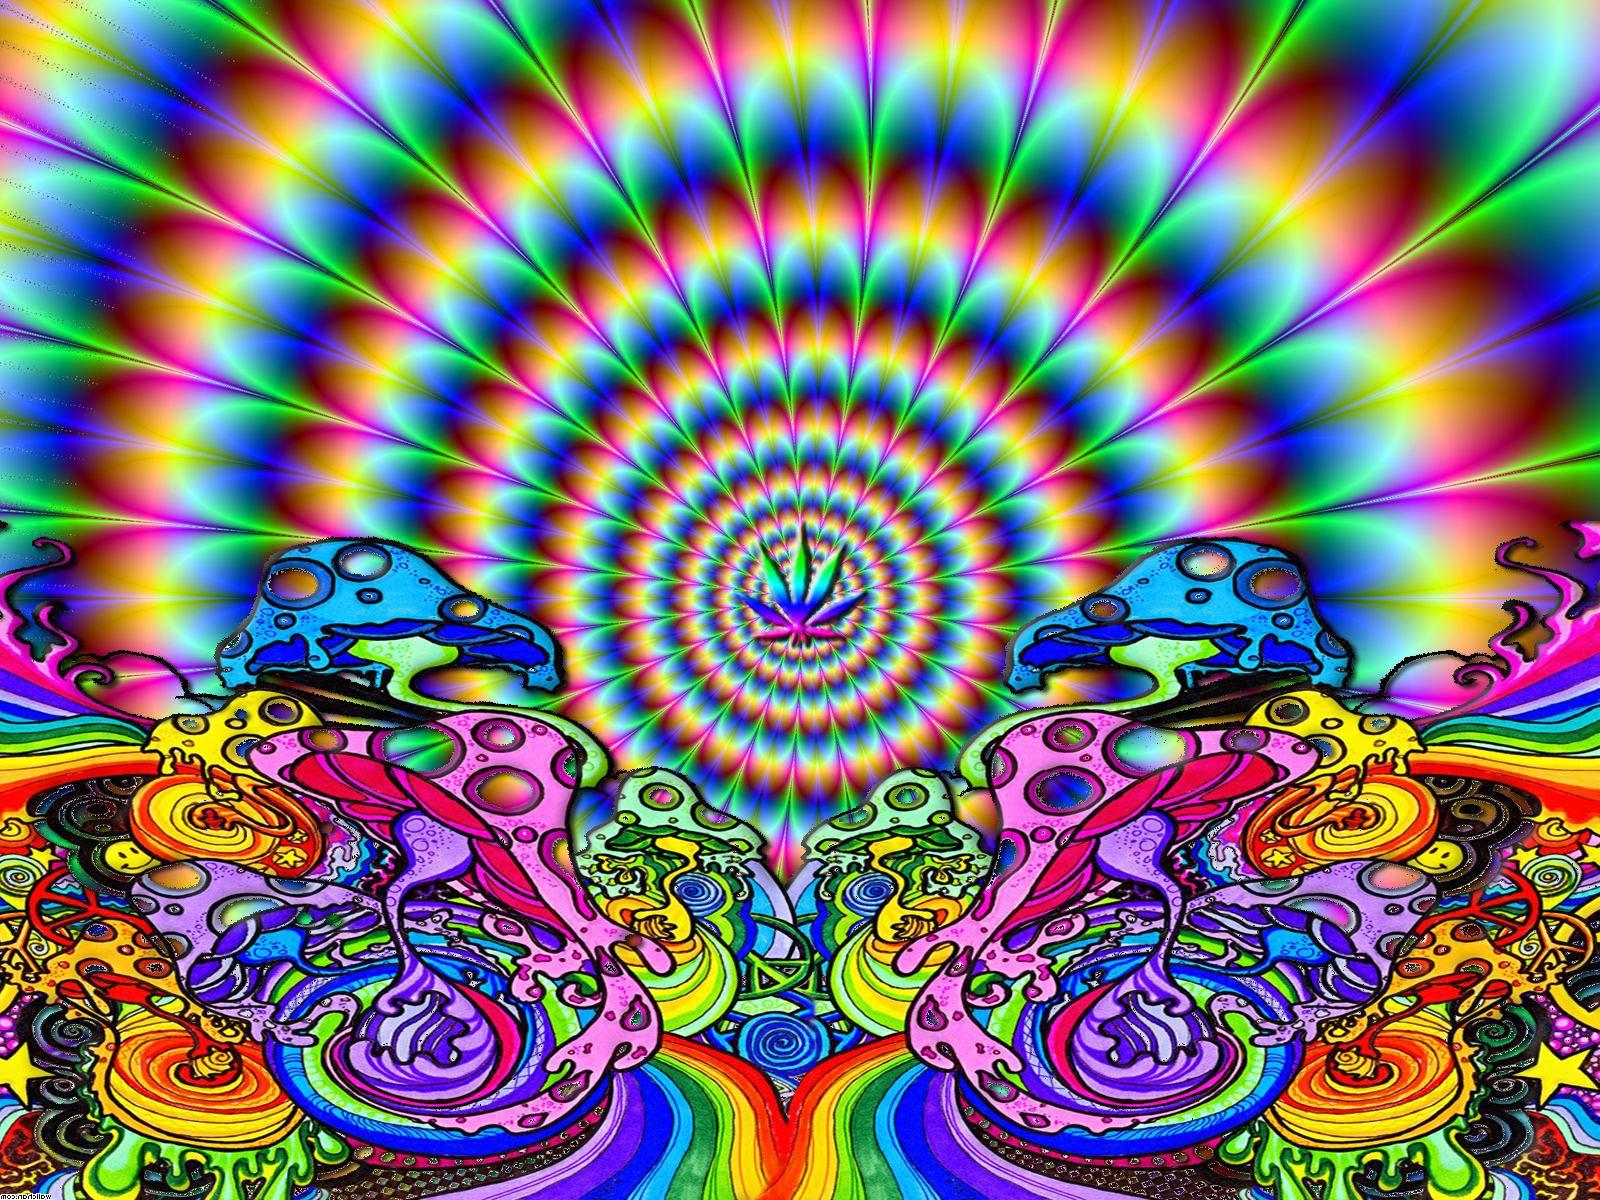 50 Trippy Background Wallpaper amp Psychedelic Wallpaper 1600x1200